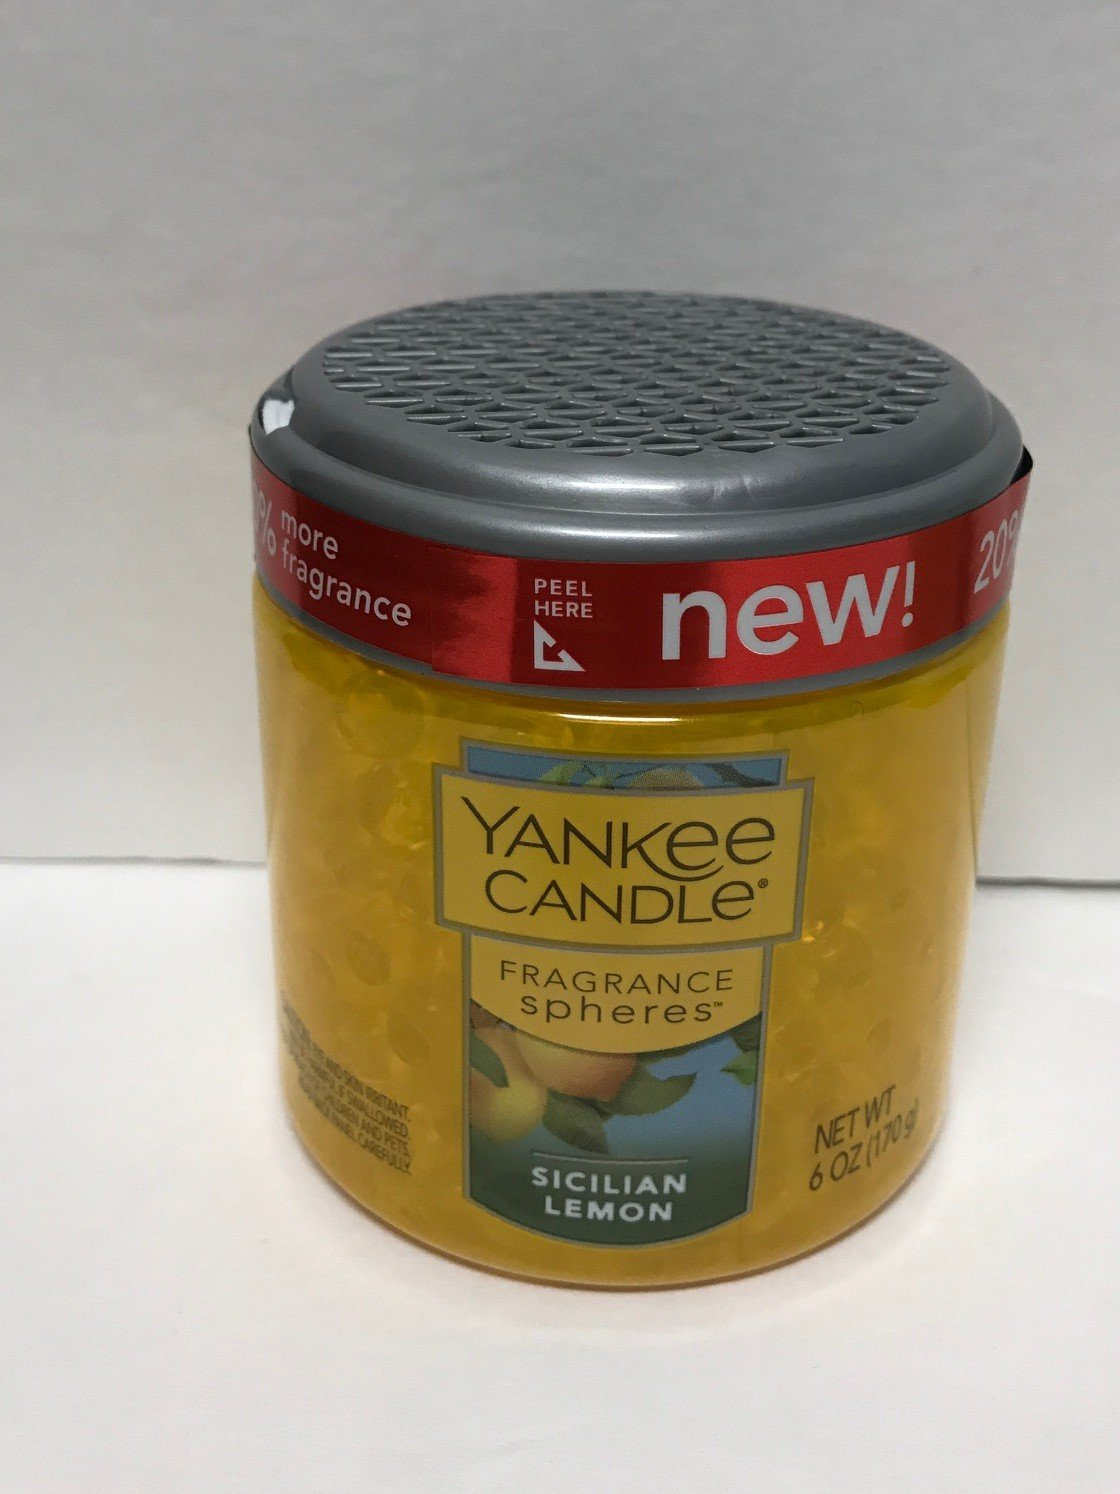 Yankee Candle Sicilian Lemon Fragrance Spheres, Fruit Scent